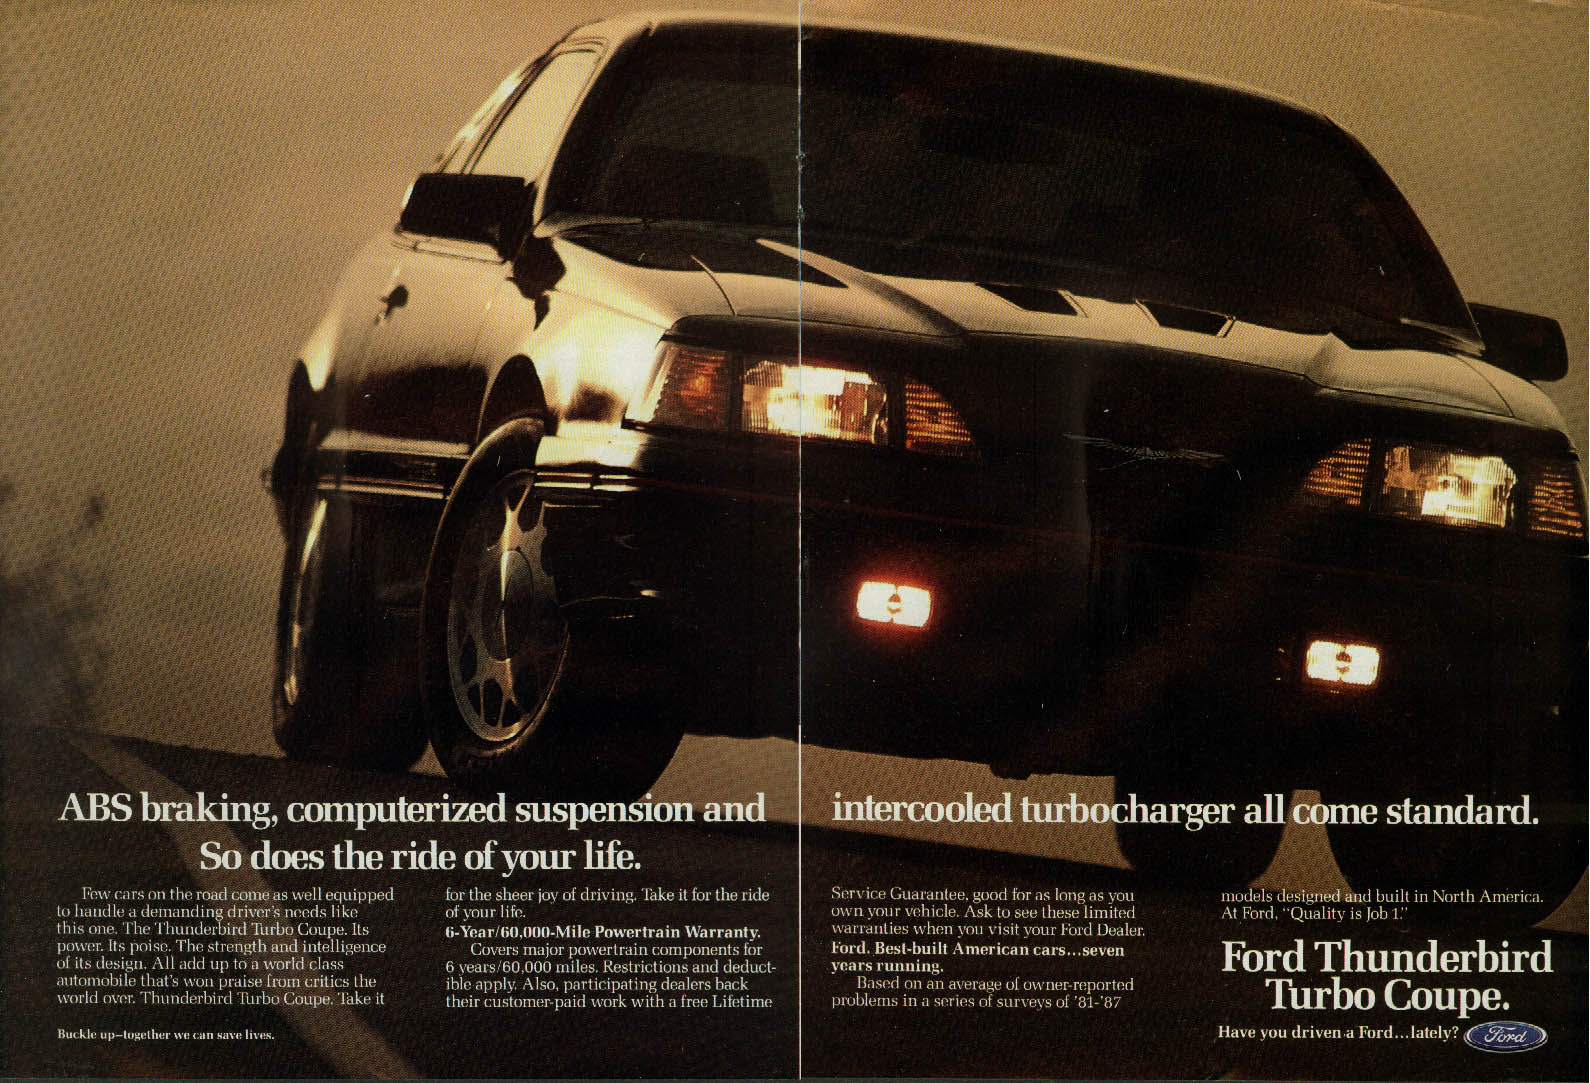 ABS braking intercooled turbocharger . . . Ford Thunderbird Turco Coupe ad 1988